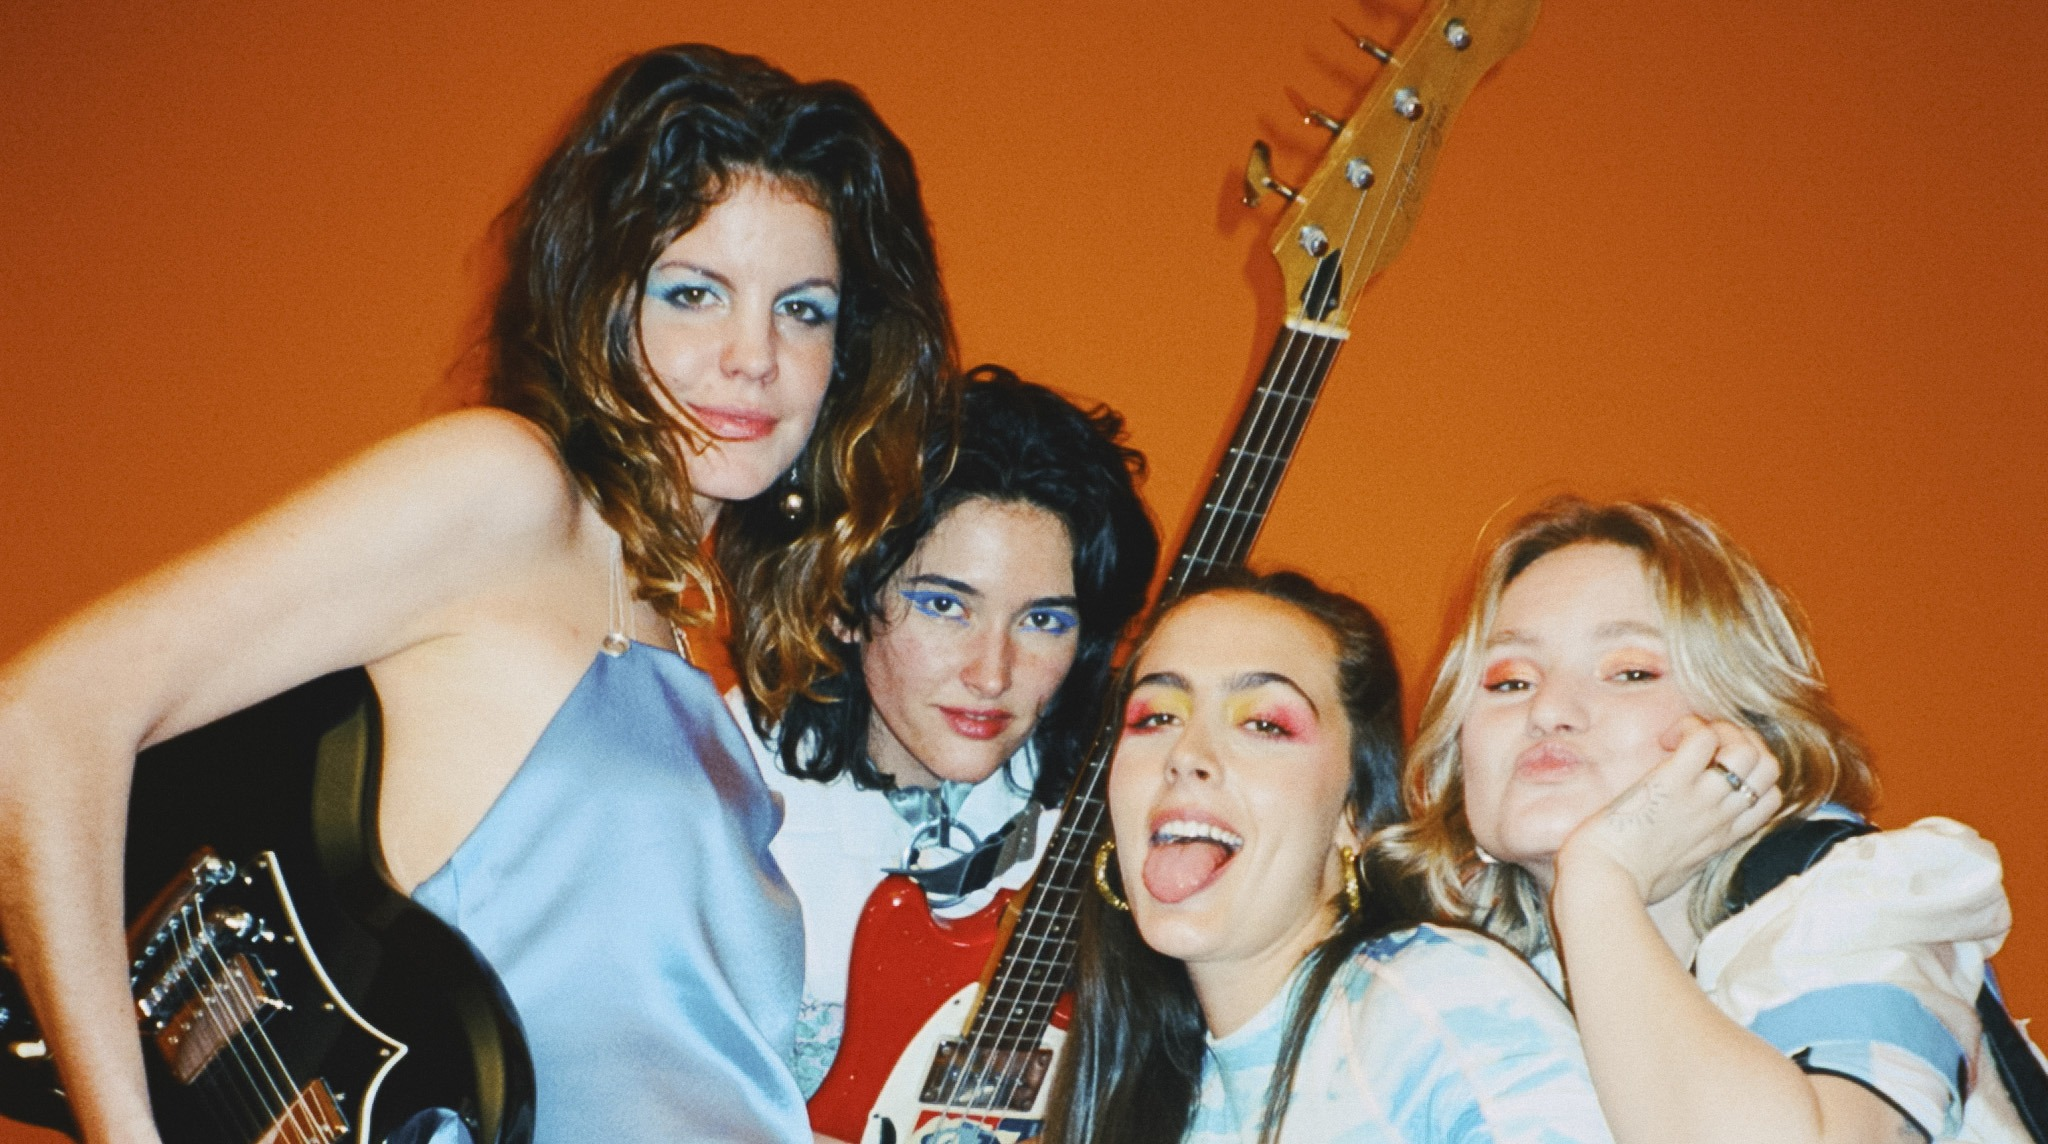 HINDS share their new single 'Just Like Kids (Miau)' - Watch Video 2